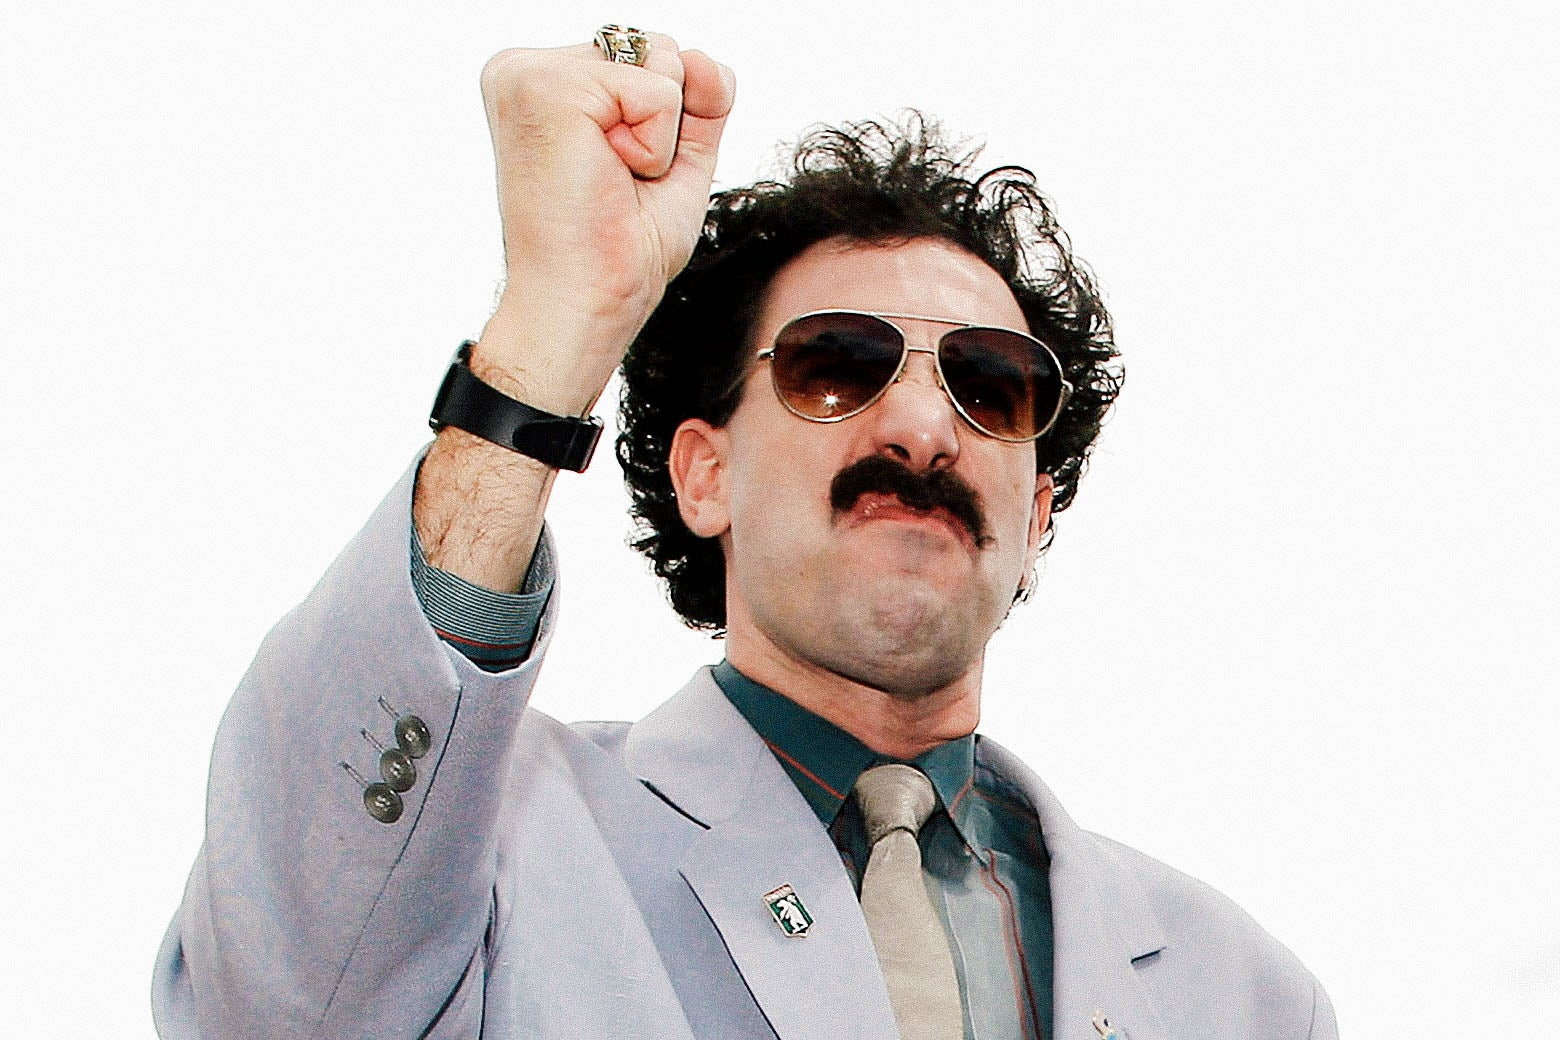 Sacha Baron Cohen, as Borat, raises his fist and scrunches up his face.